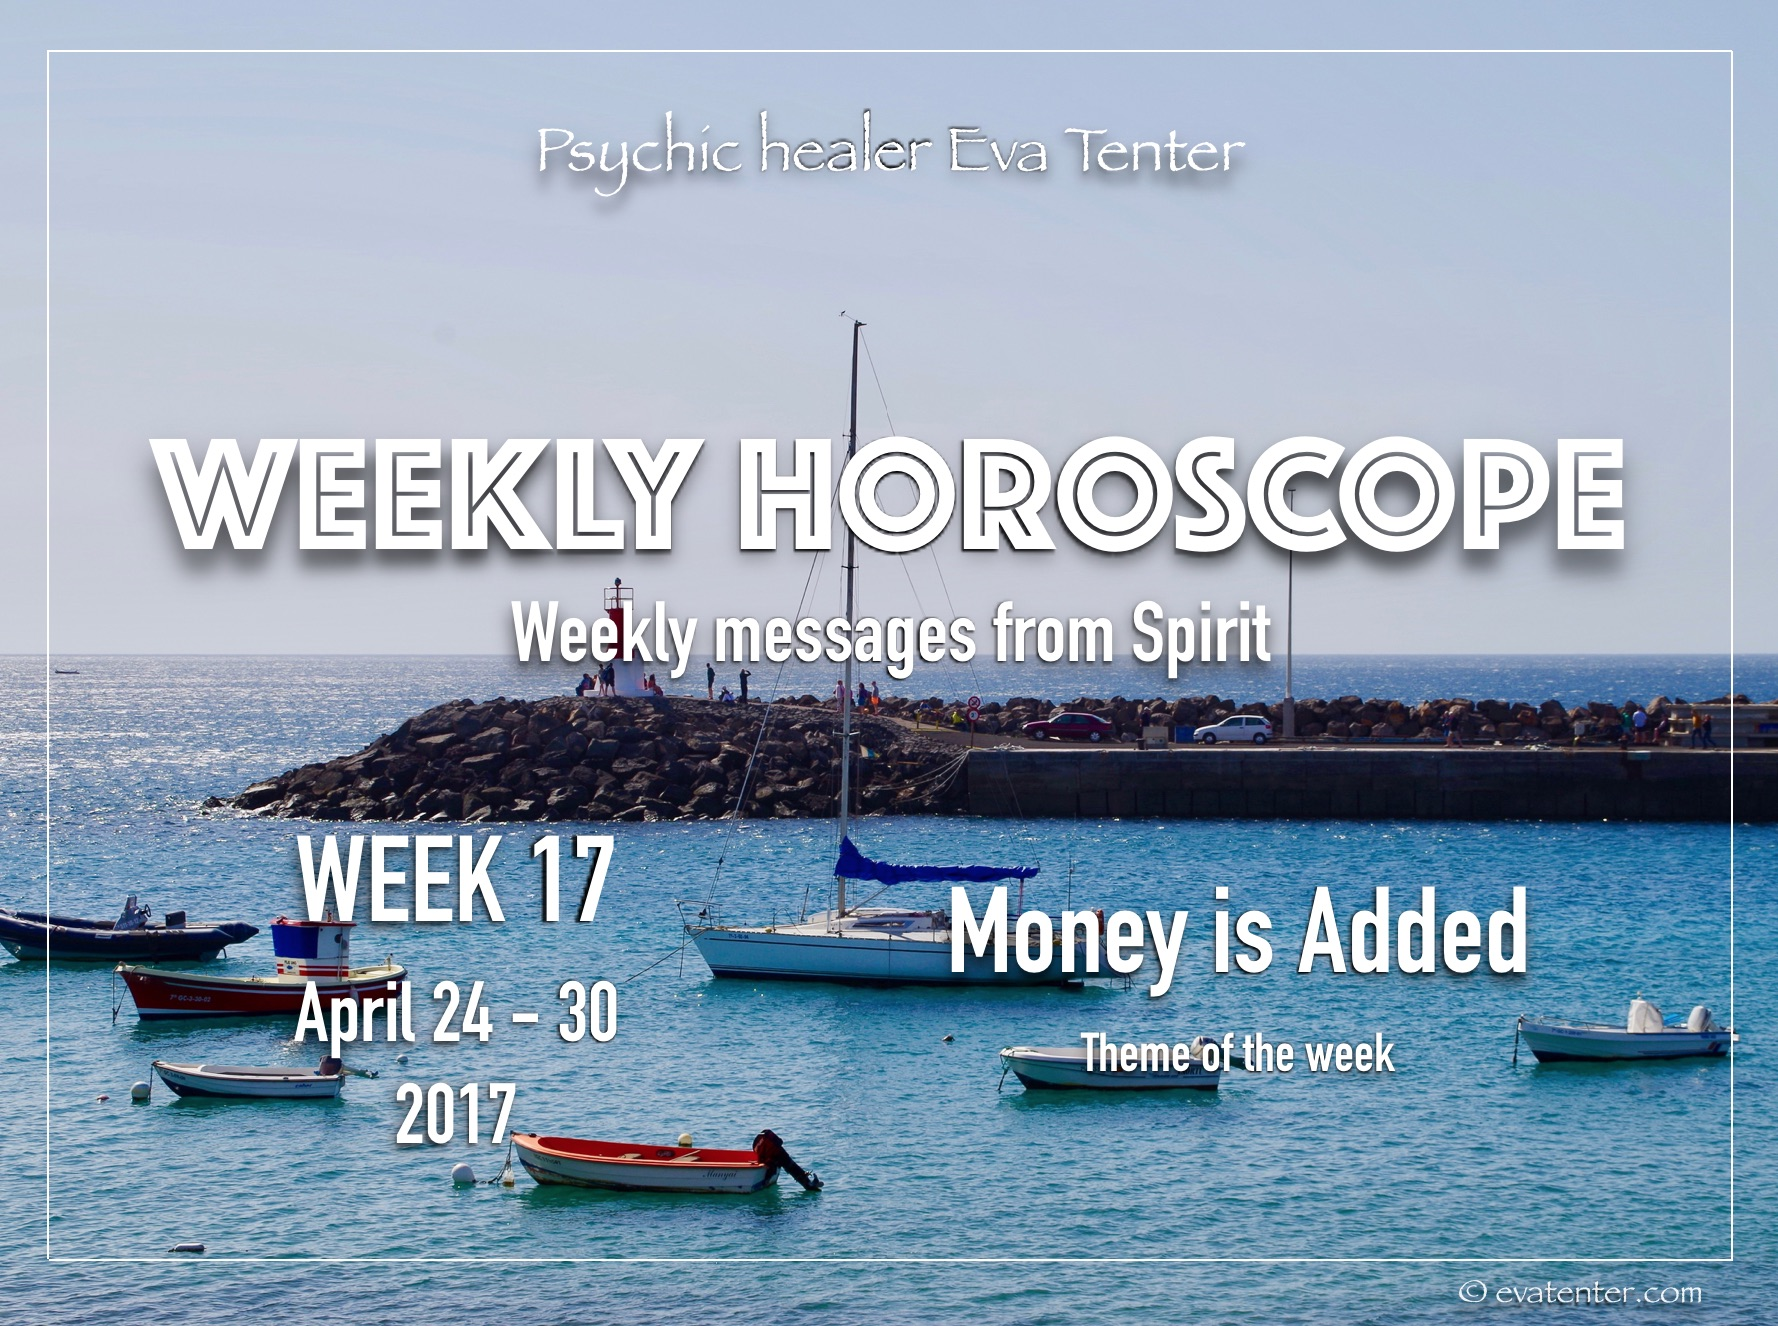 Weekly horoscope April 24-30, 2017 #horoscope